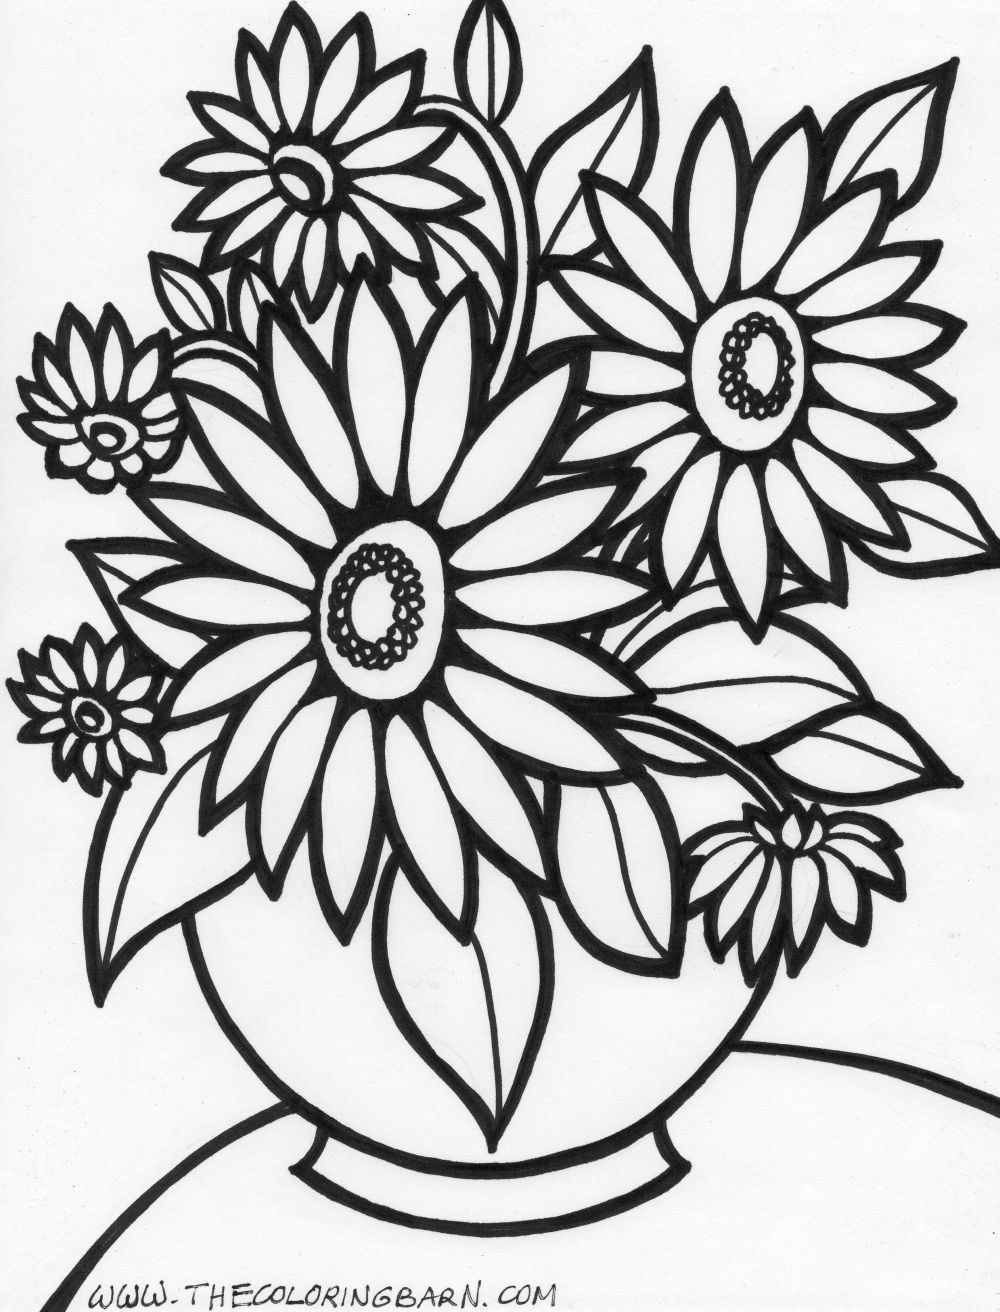 Colouring in pictures of flowers - Download